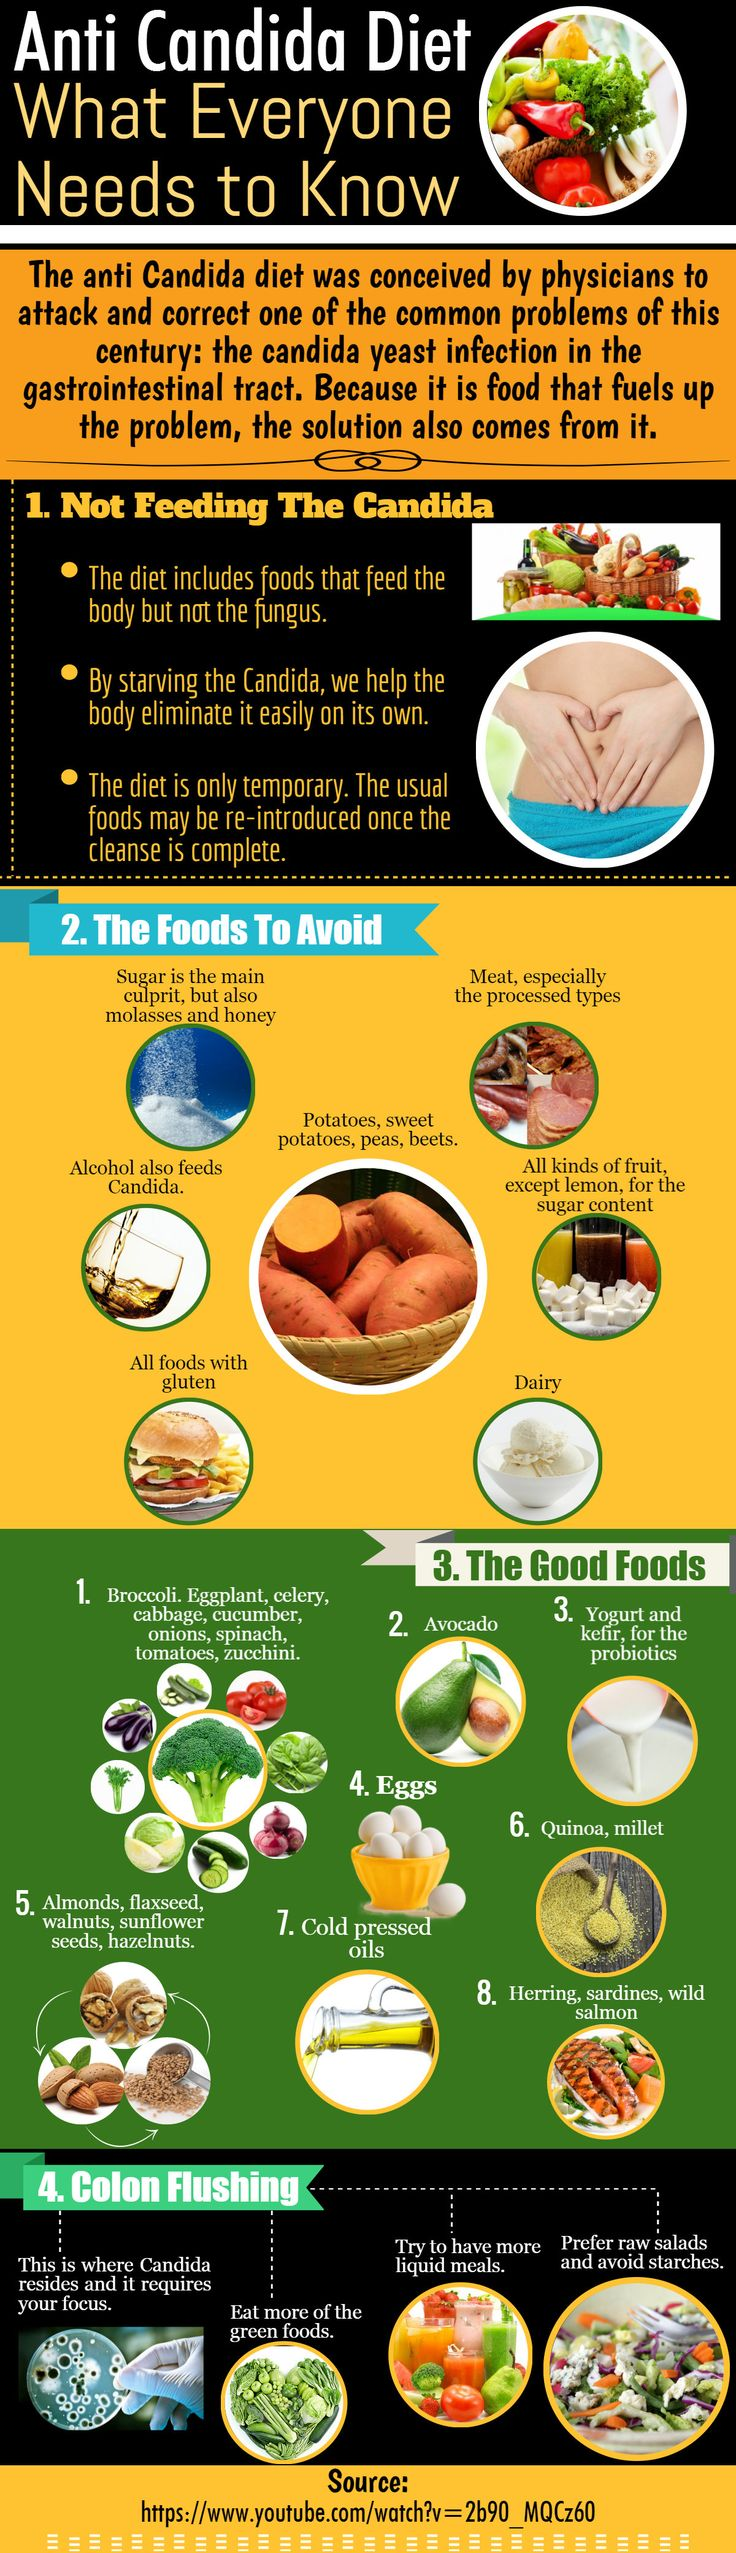 Anti Candida diet plan is considered good for controlling the candidiasis. The sugars need to be cut down to check the ability of the yeast cells to divide and grow. This is the gist of the Candida diet. For More Information about Anti Candida Diet, please watch https://www.youtube.com/watch?v=2b90_MQCz60